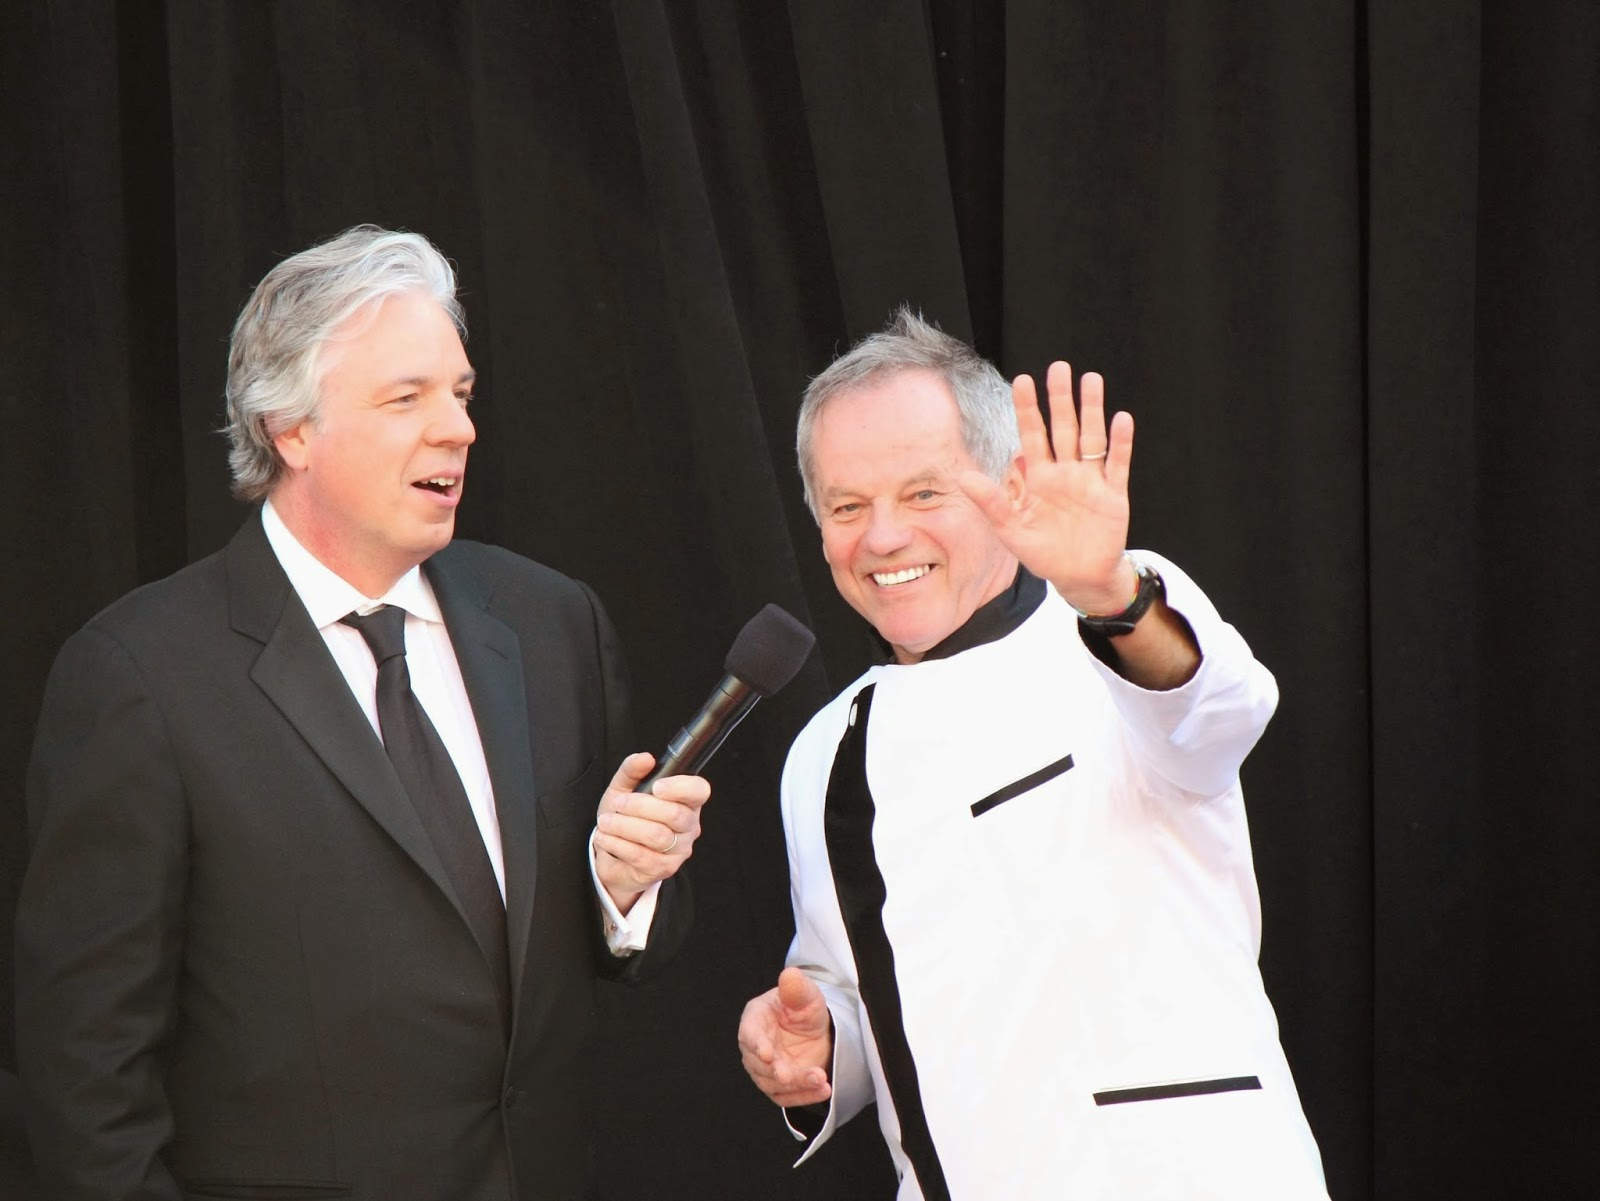 Chris Connelly interviewing Wolfgang Puck, who's waving to the fans, on the red carpet for the 2013 Oscars.